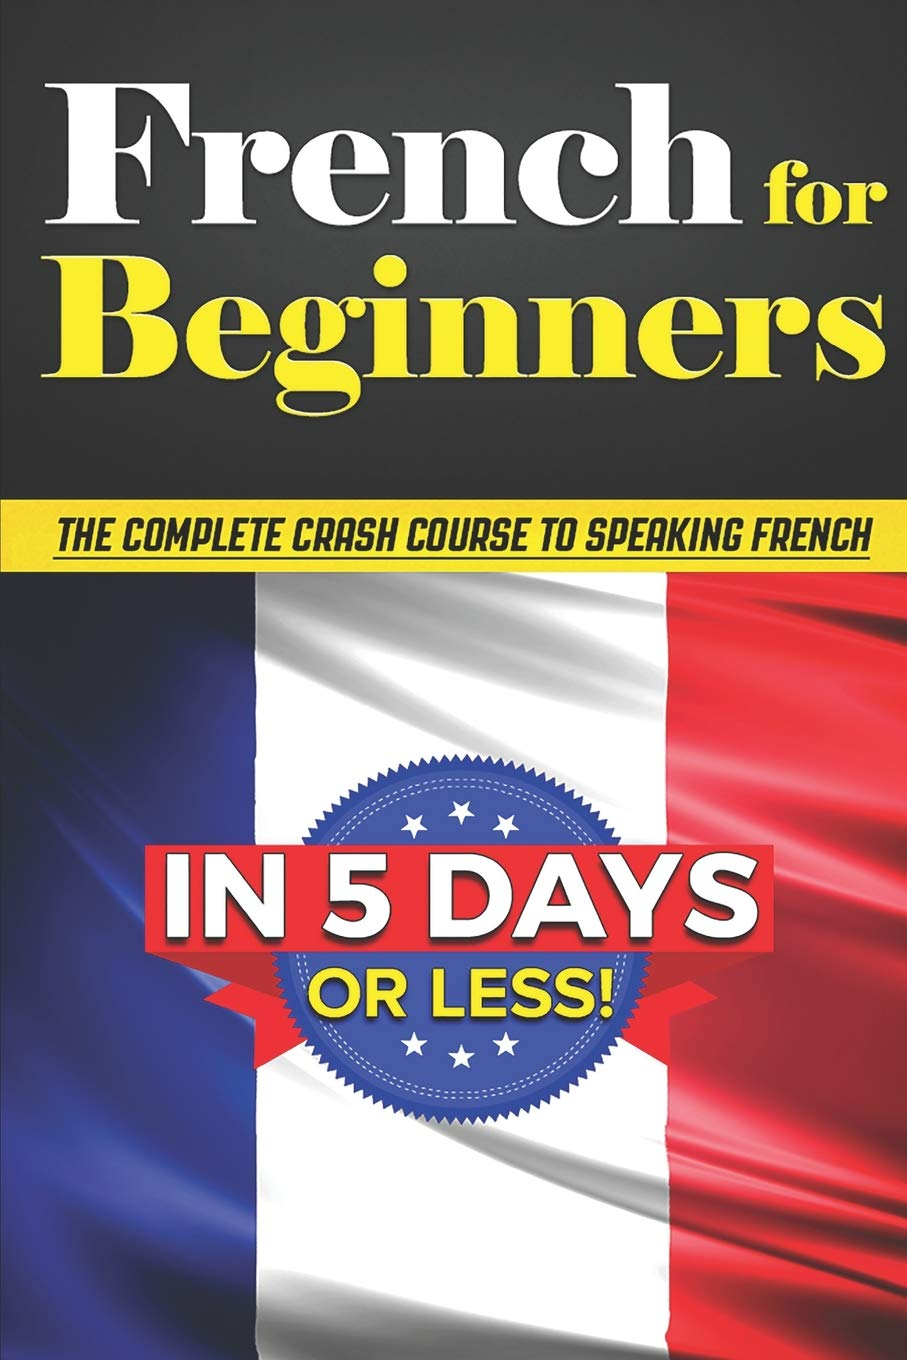 French for Beginners: The COMPLETE Crash Course to Speaking French in 5 DAYS OR LESS! PDF Text fb2 book